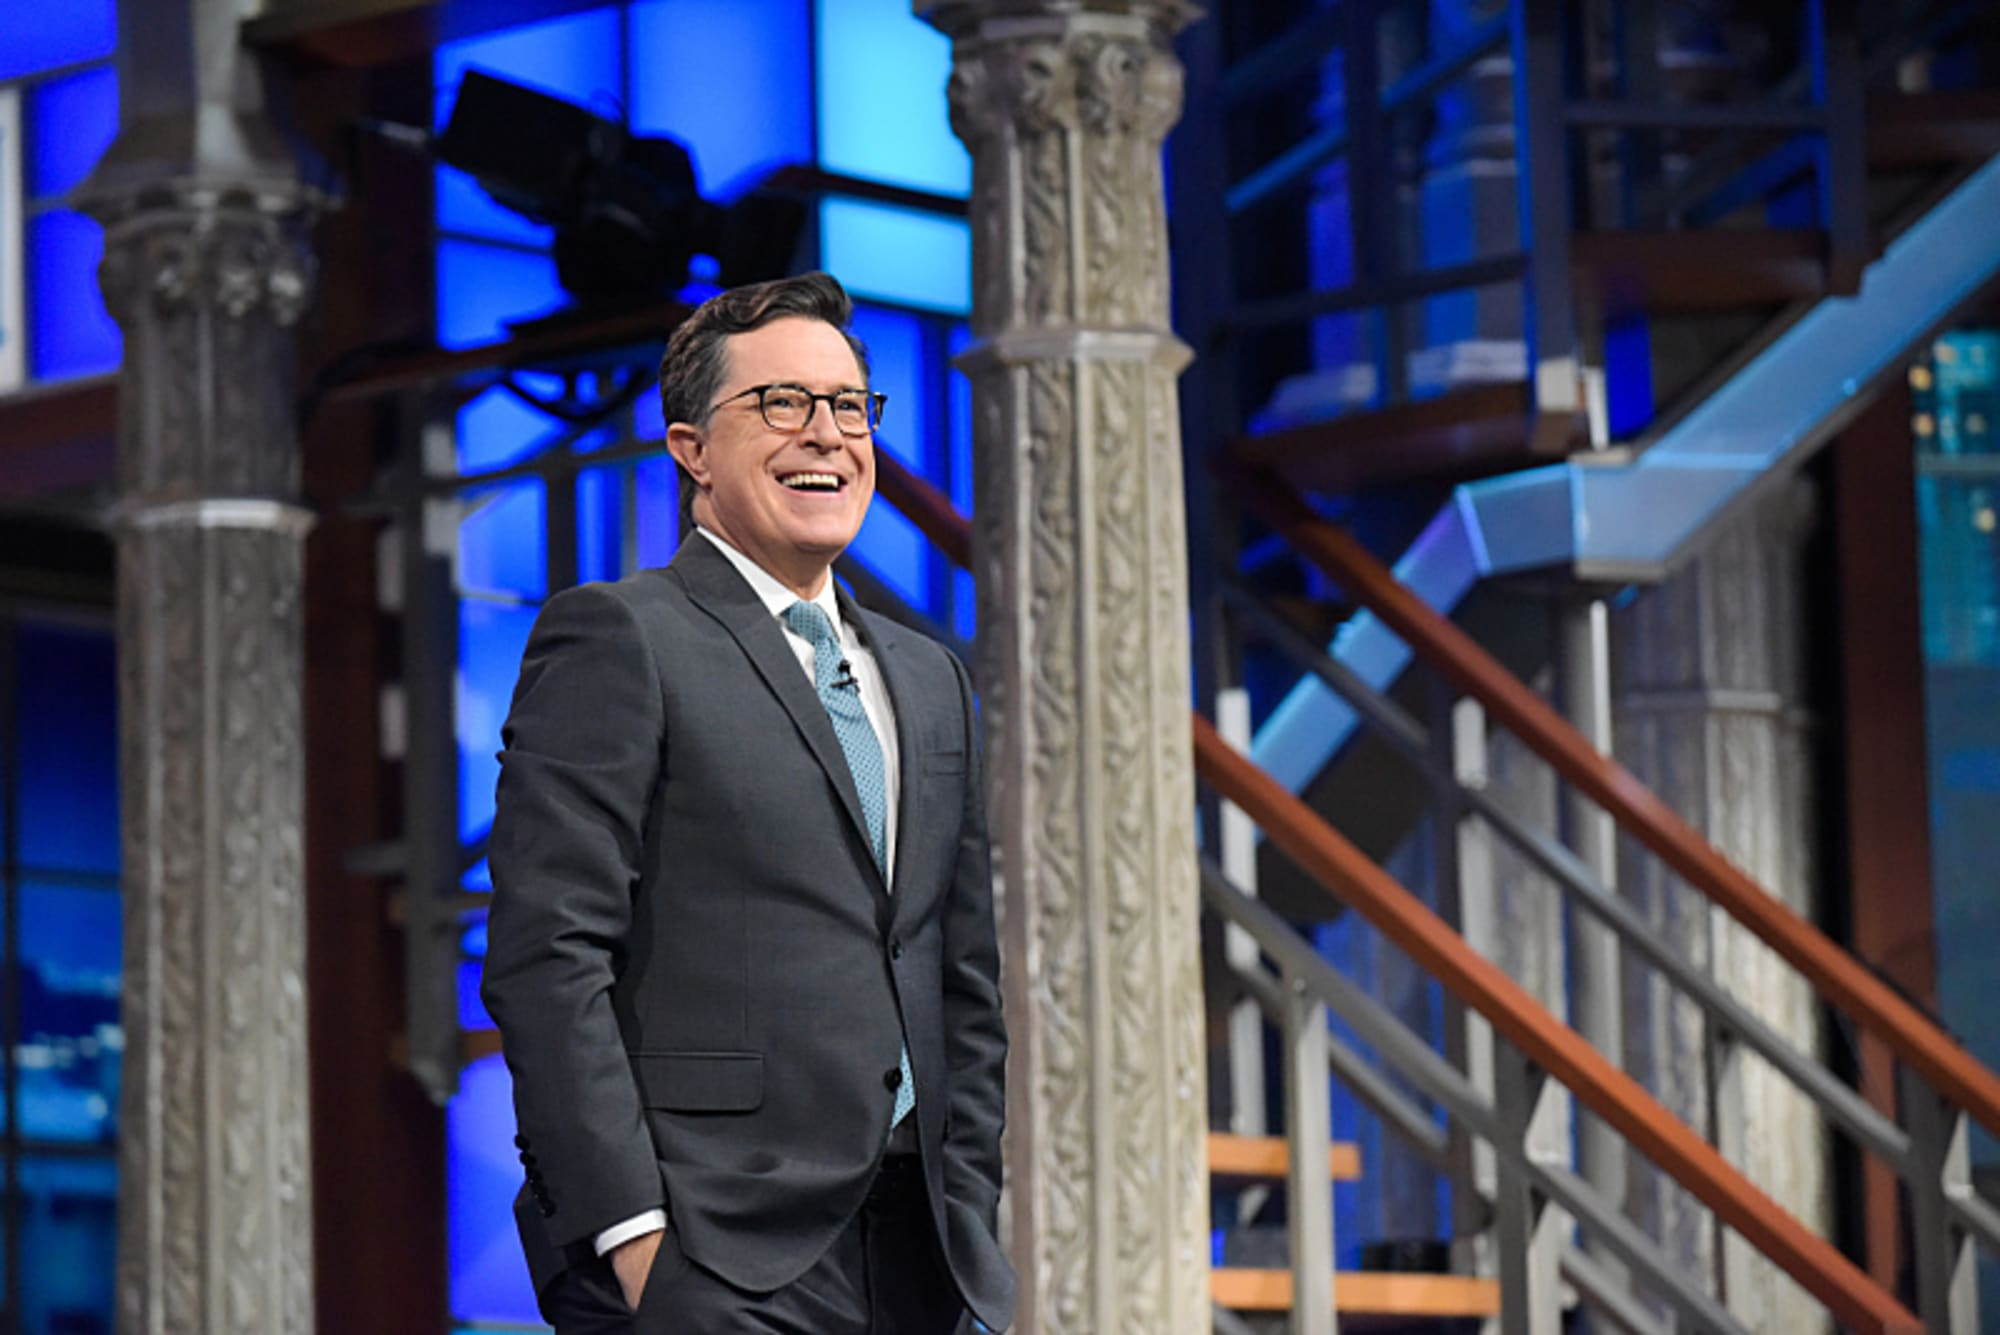 The Late Show with Stephen Colbert returns tonight with a new look